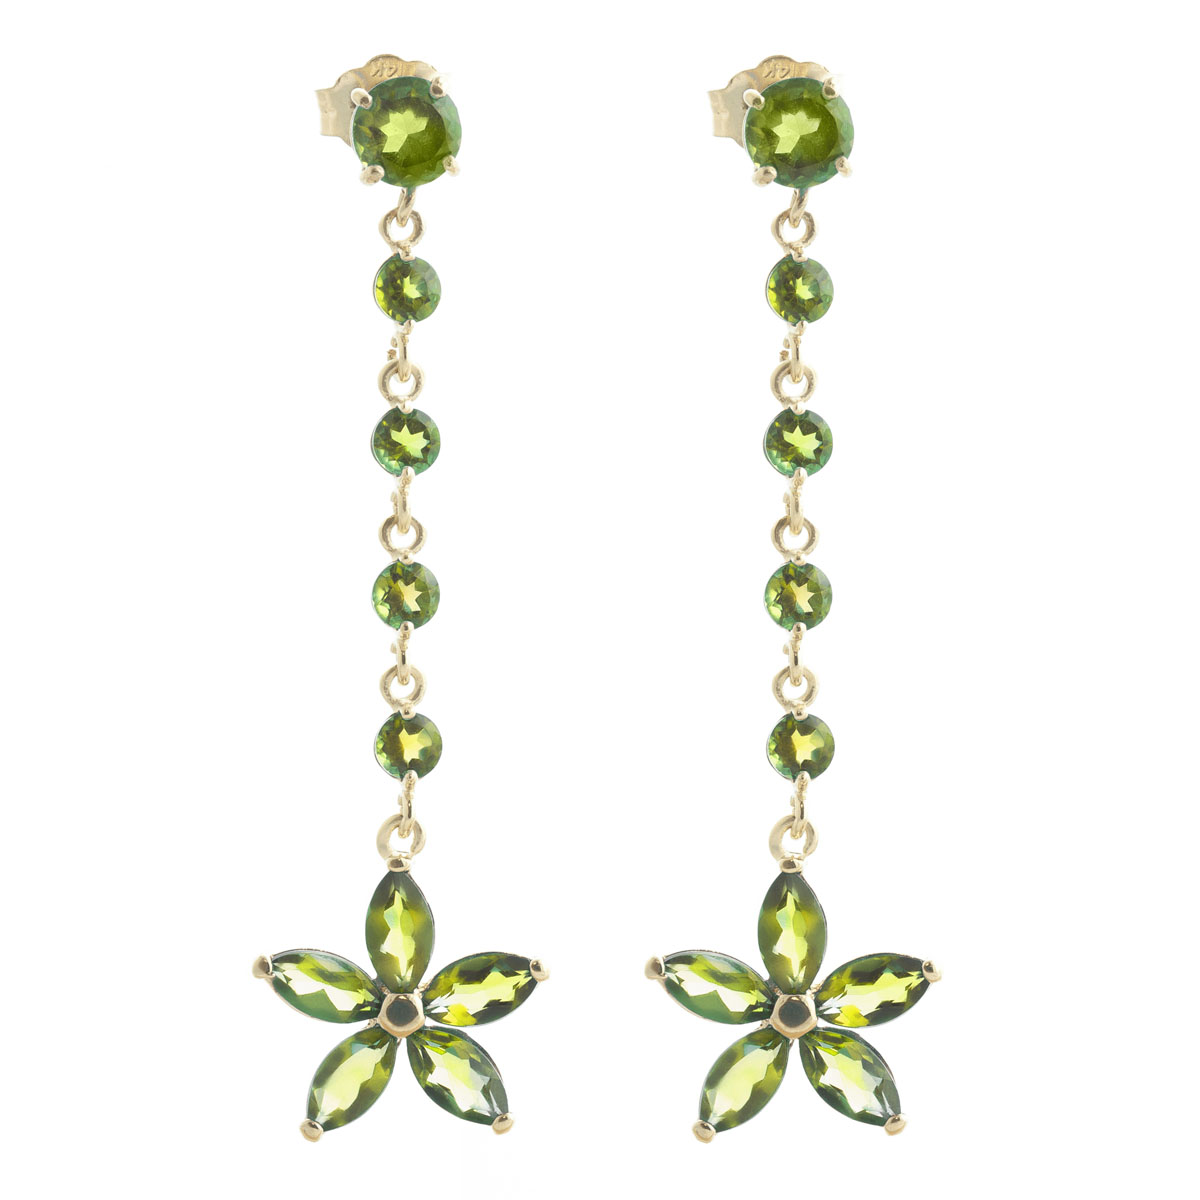 Peridot Daisy Chain Drop Earrings 4.8 ctw in 9ct Gold